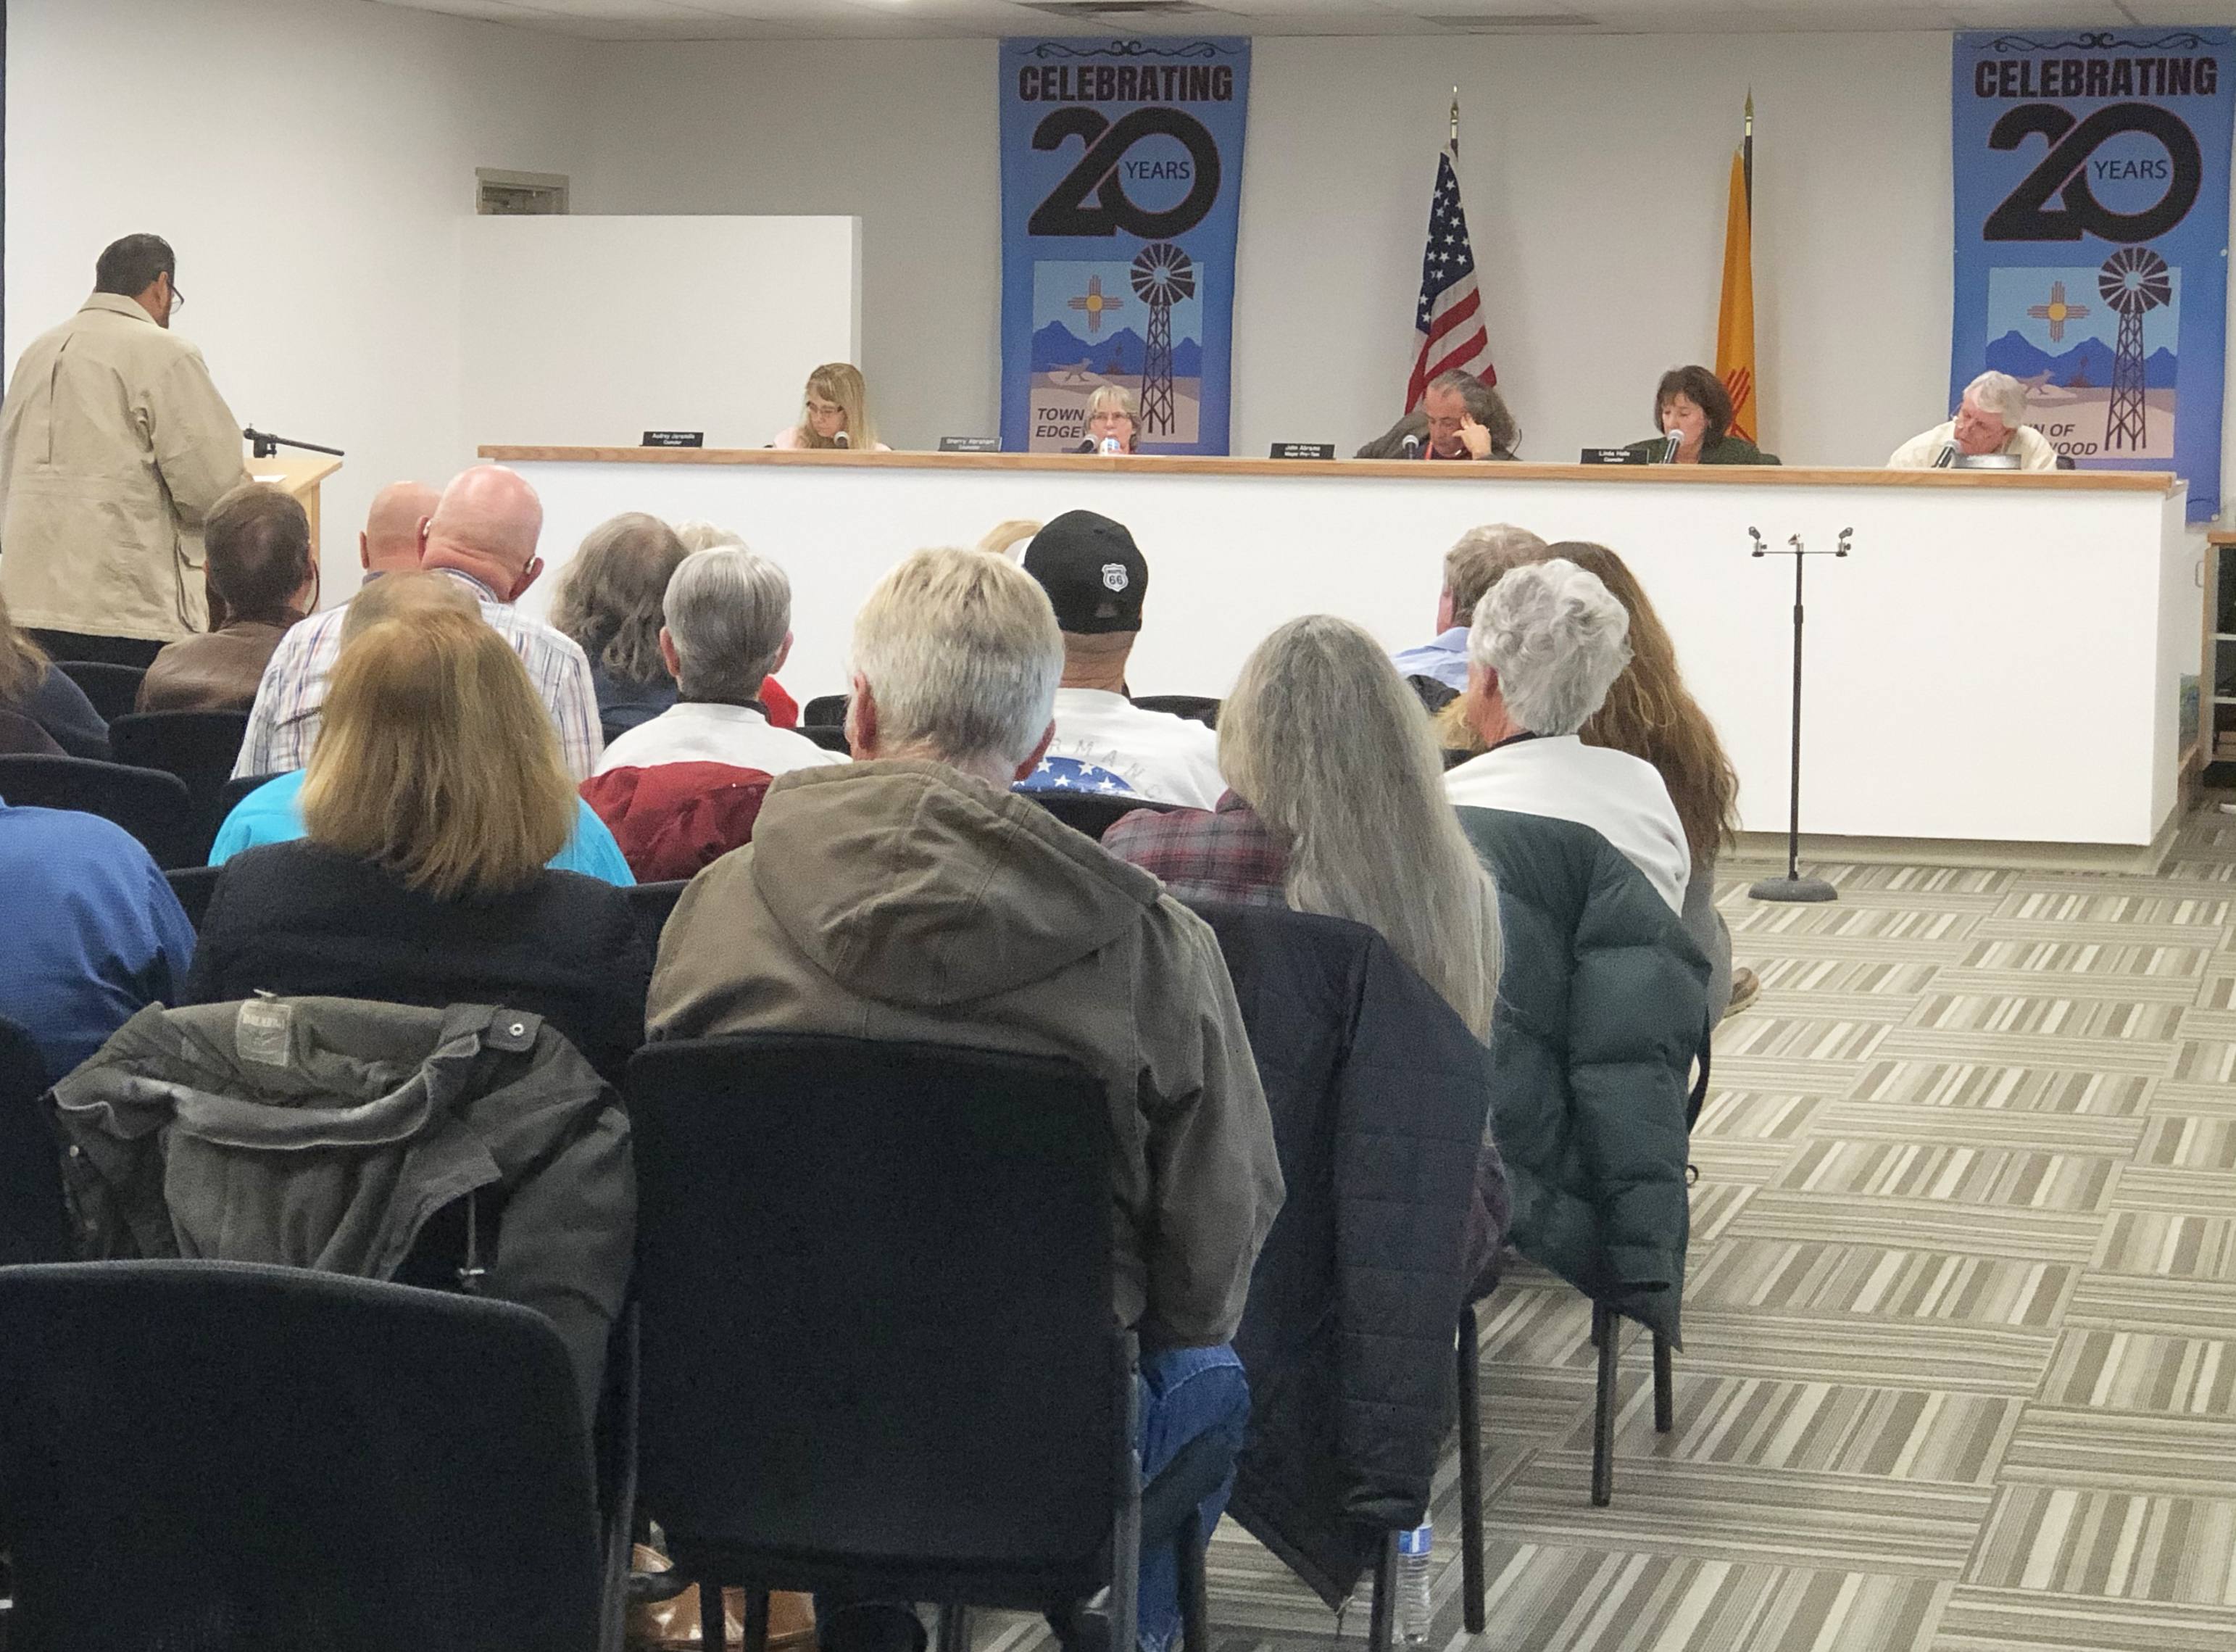 Petition: Scrap mayor and council in Edgewood